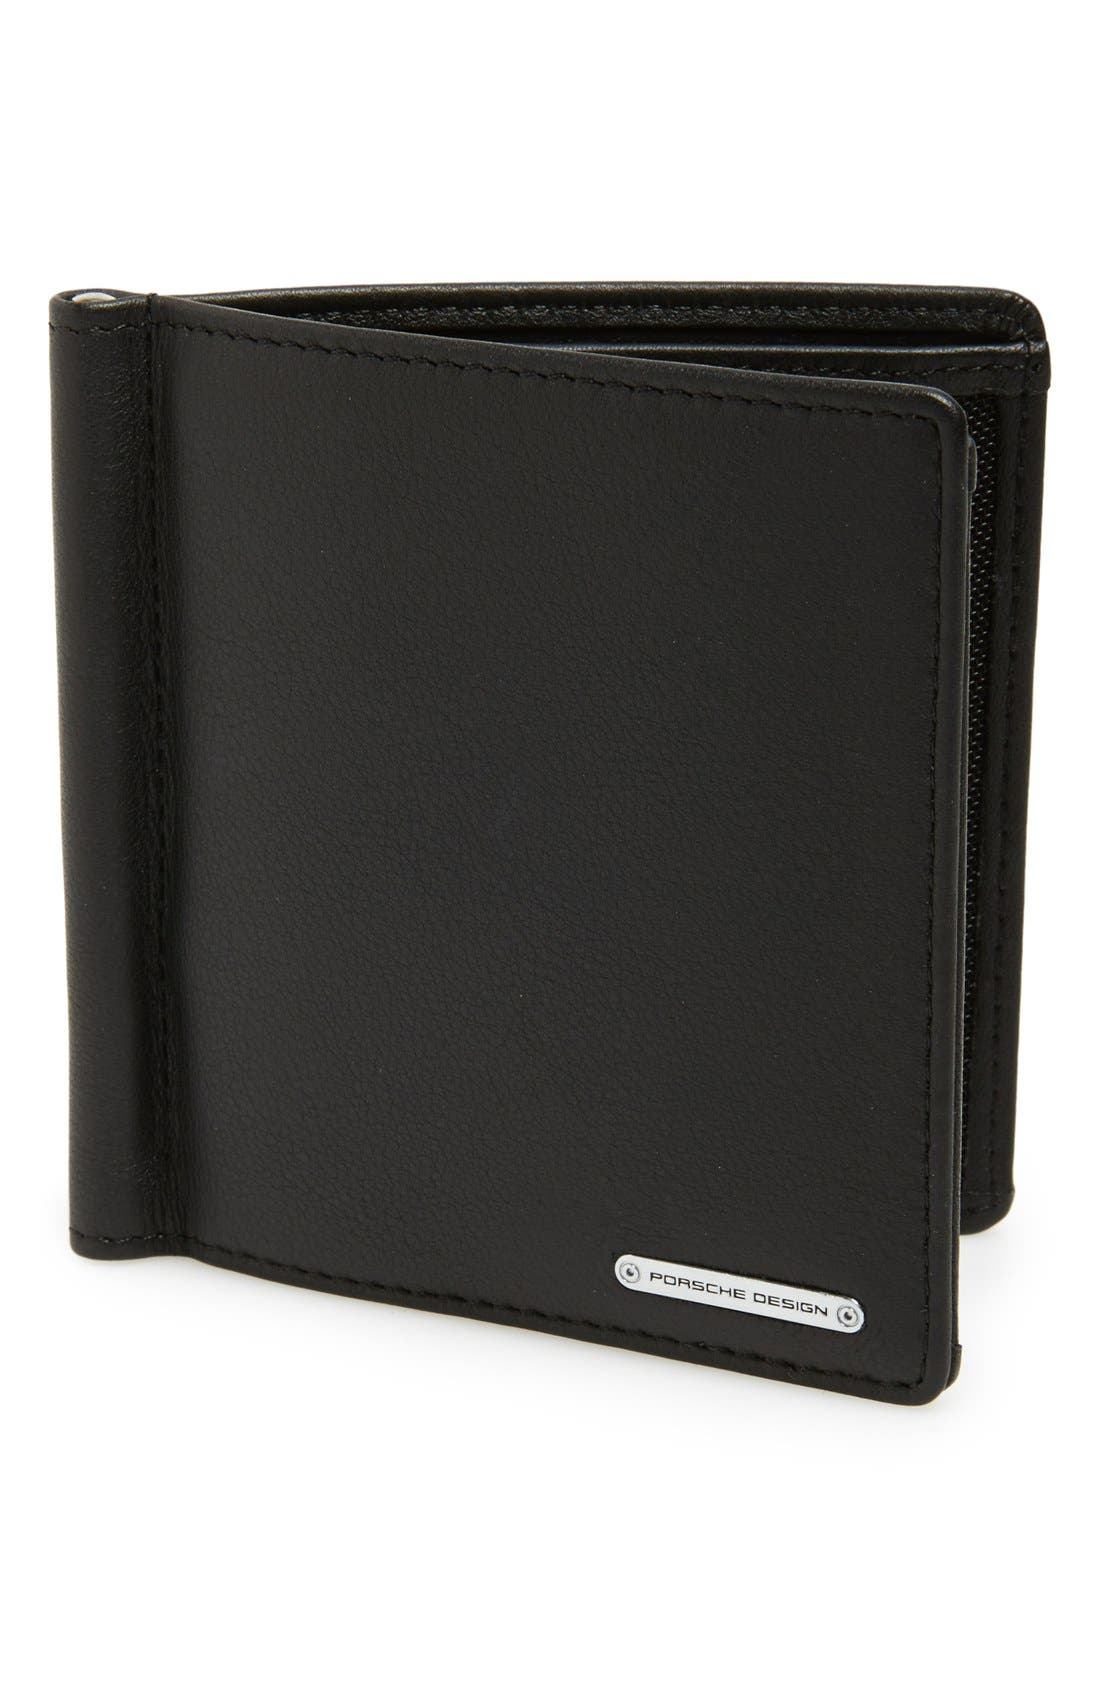 PORSCHE DESIGN CL2 2.0 Money Clip Card Holder